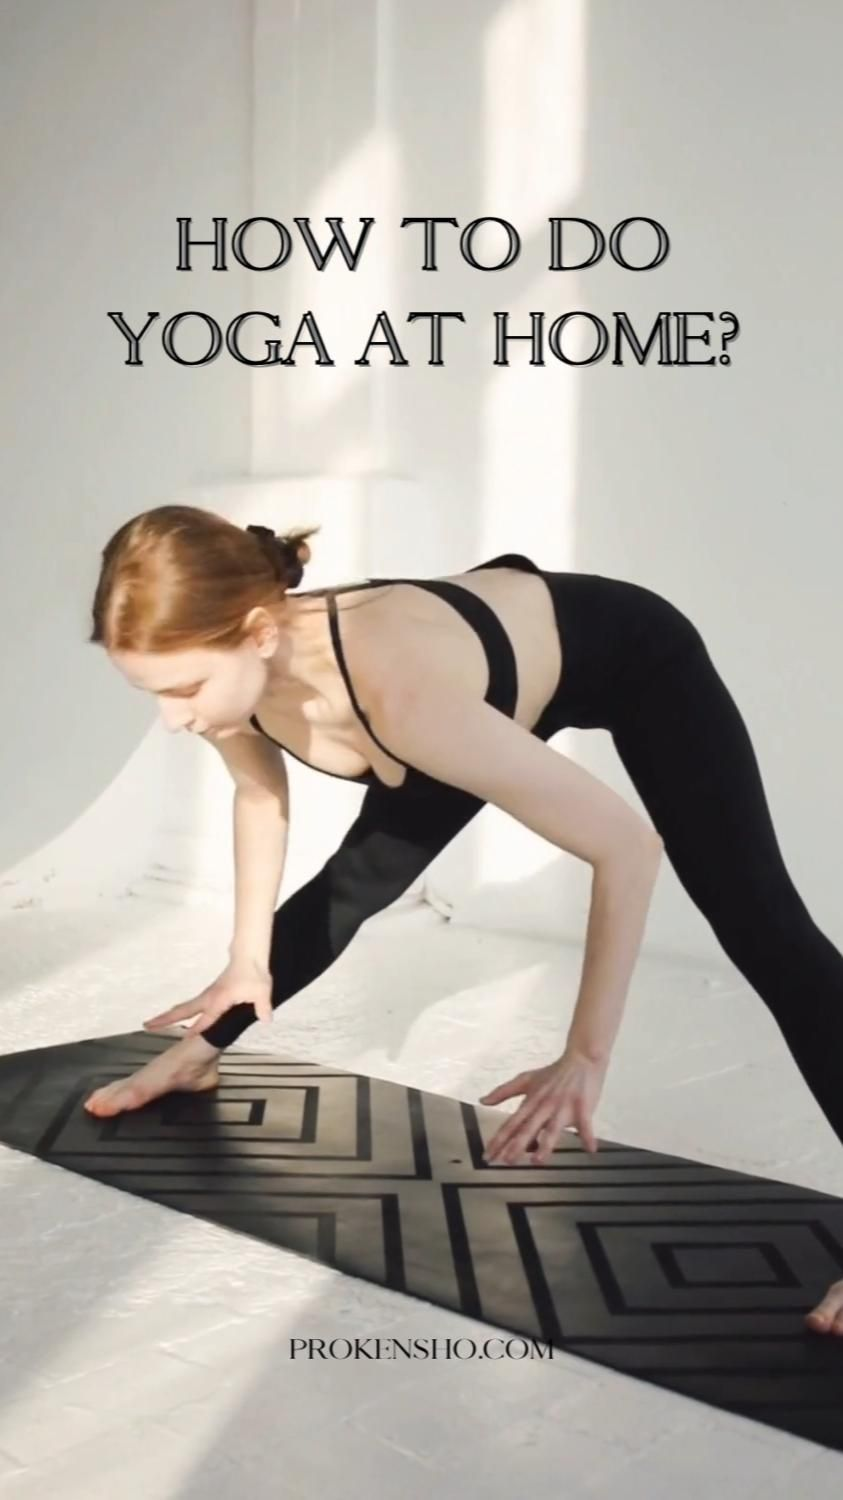 HOW TO DO YOGA AT HOME?